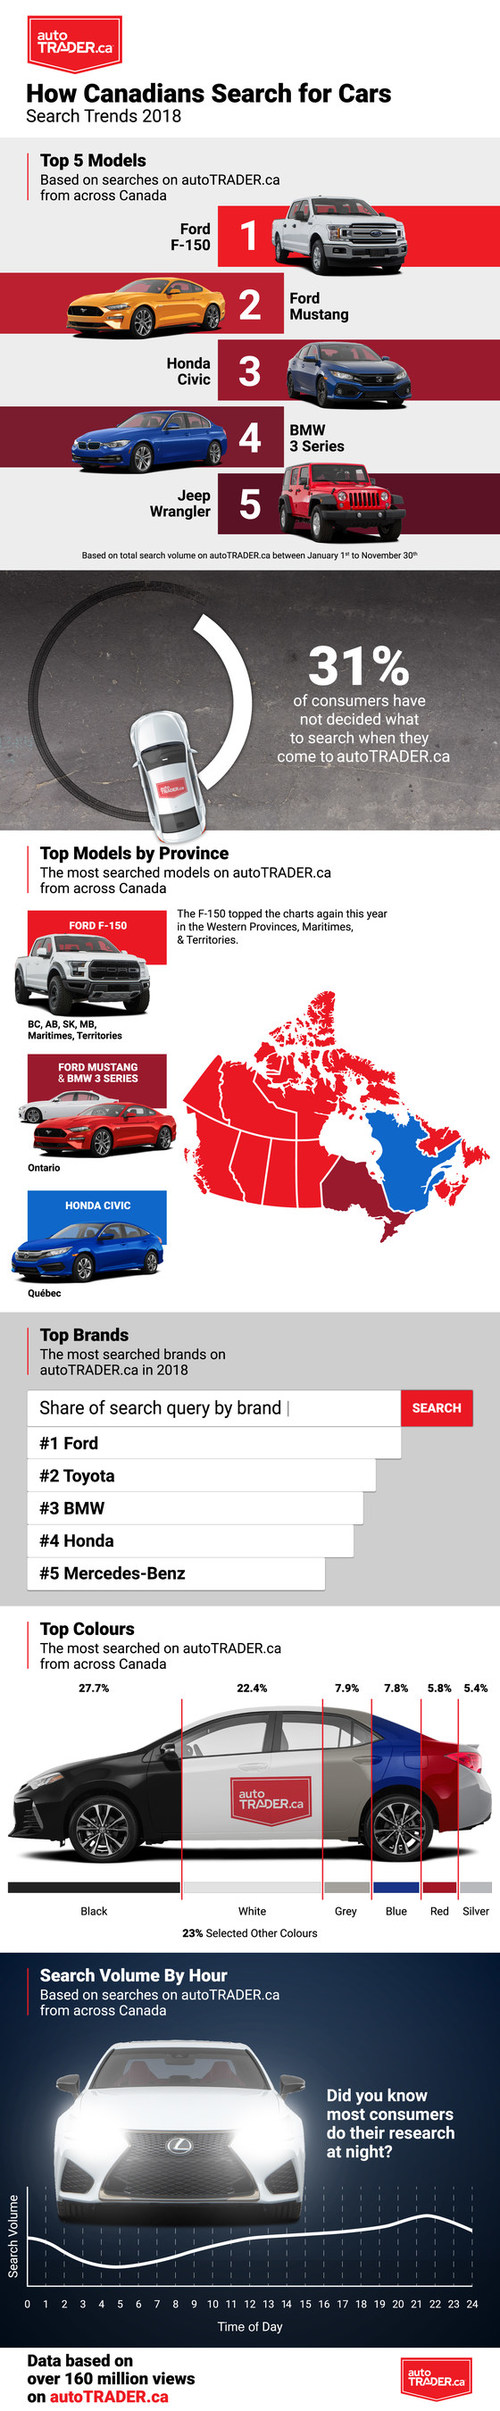 autoTRADER.ca's annual top 10 most searched vehicles list for 2018 (CNW Group/autoTRADER.ca)